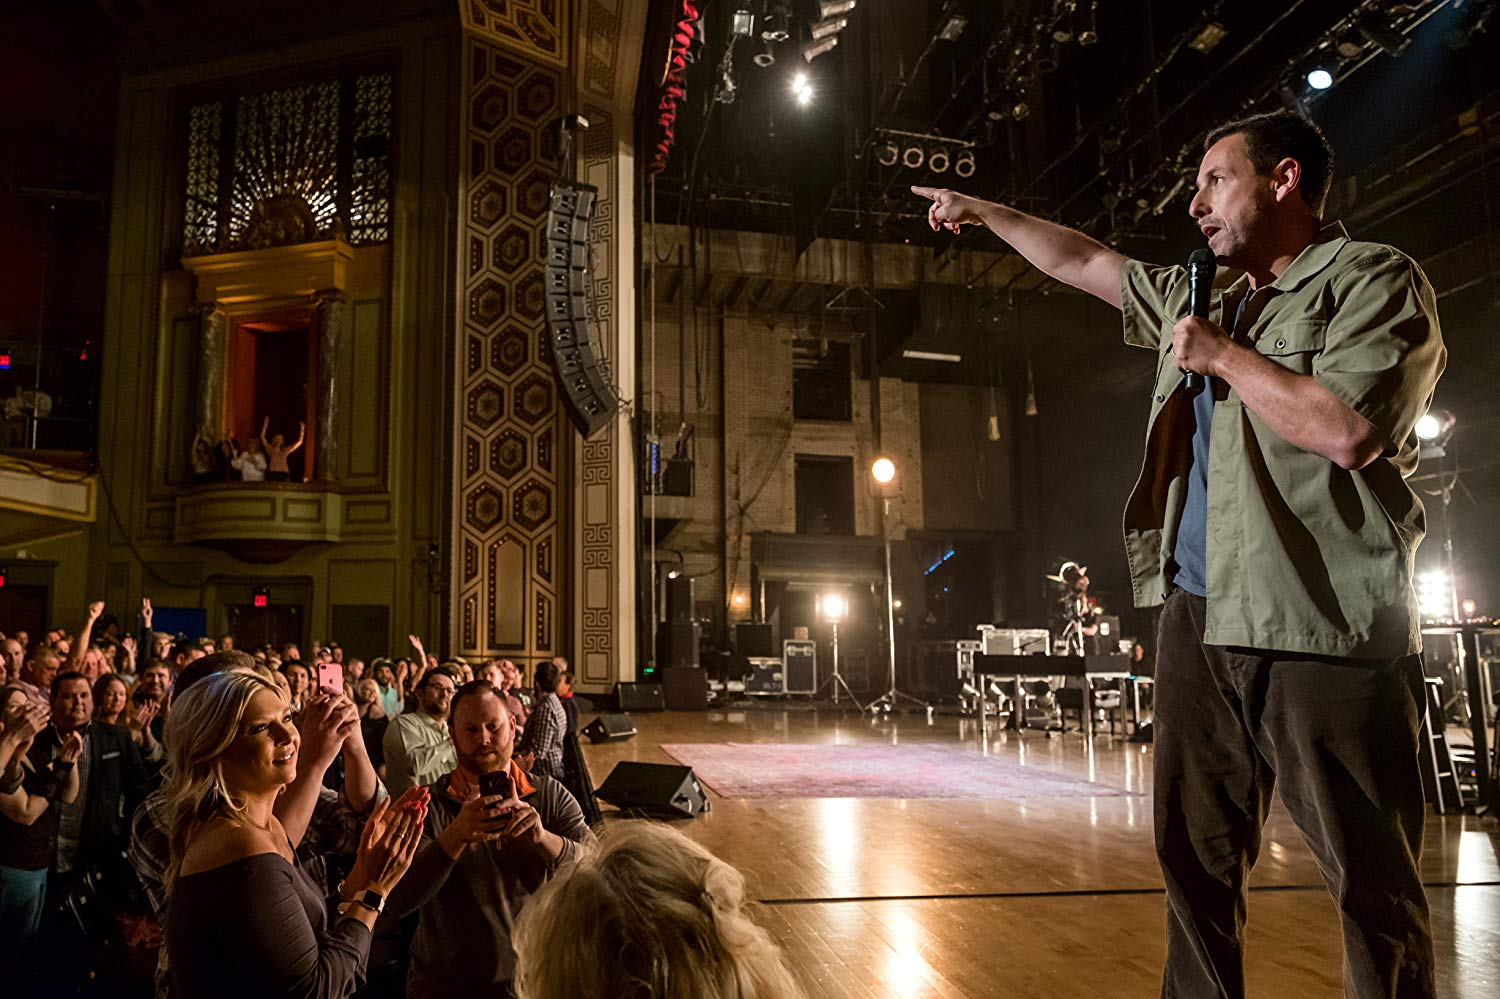 Adam Sandler takes '100% Fresher' comedy tour to Giant Center in